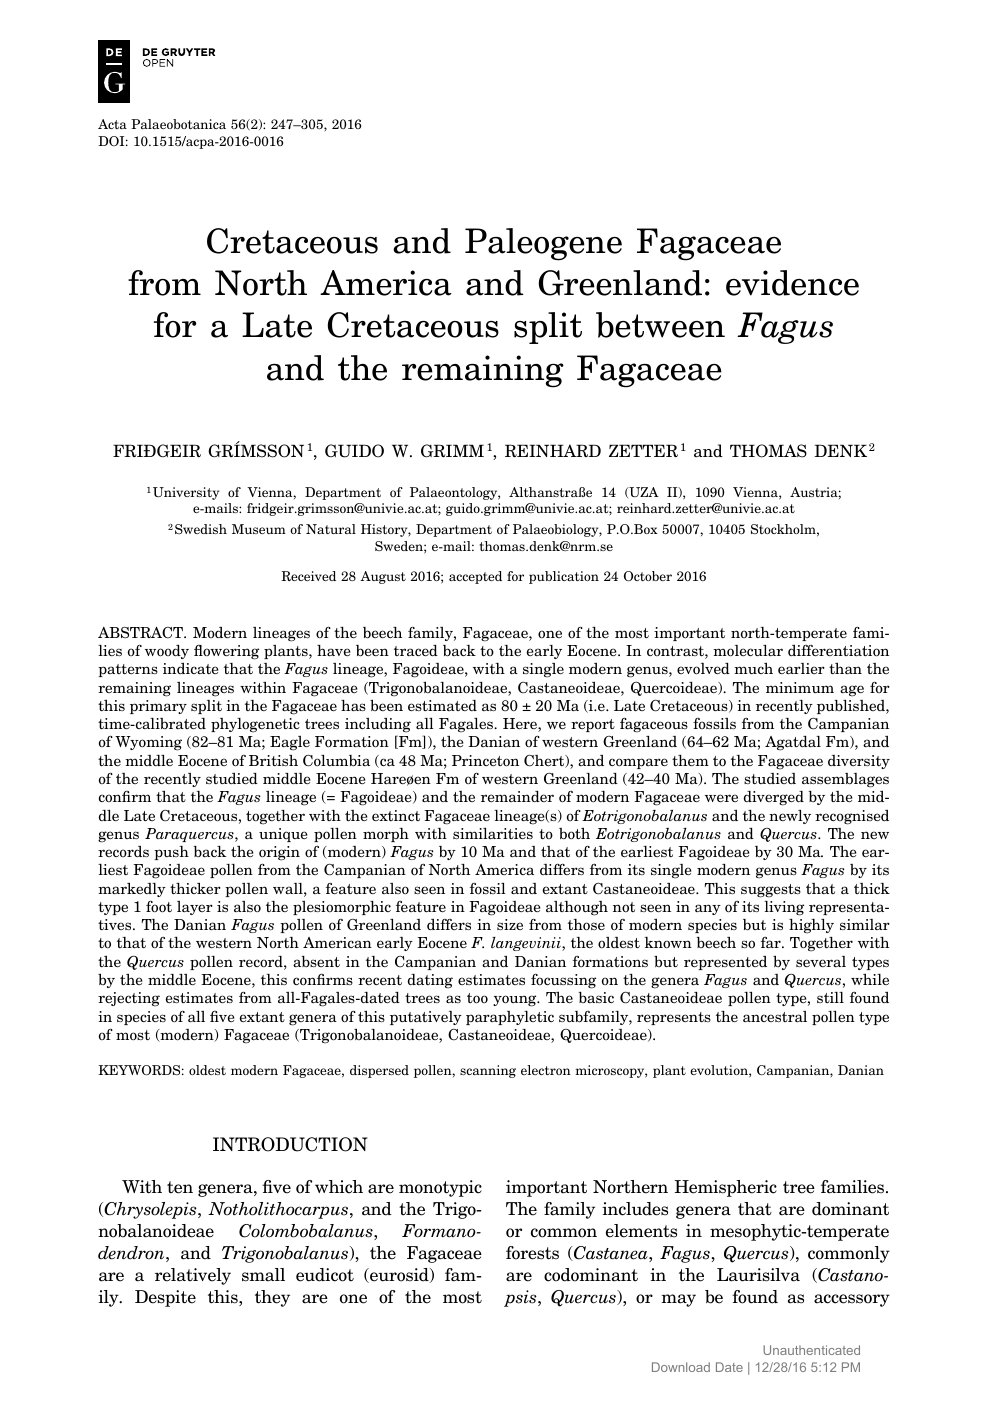 Cretaceous and Paleogene Fagaceae from North America and Greenland